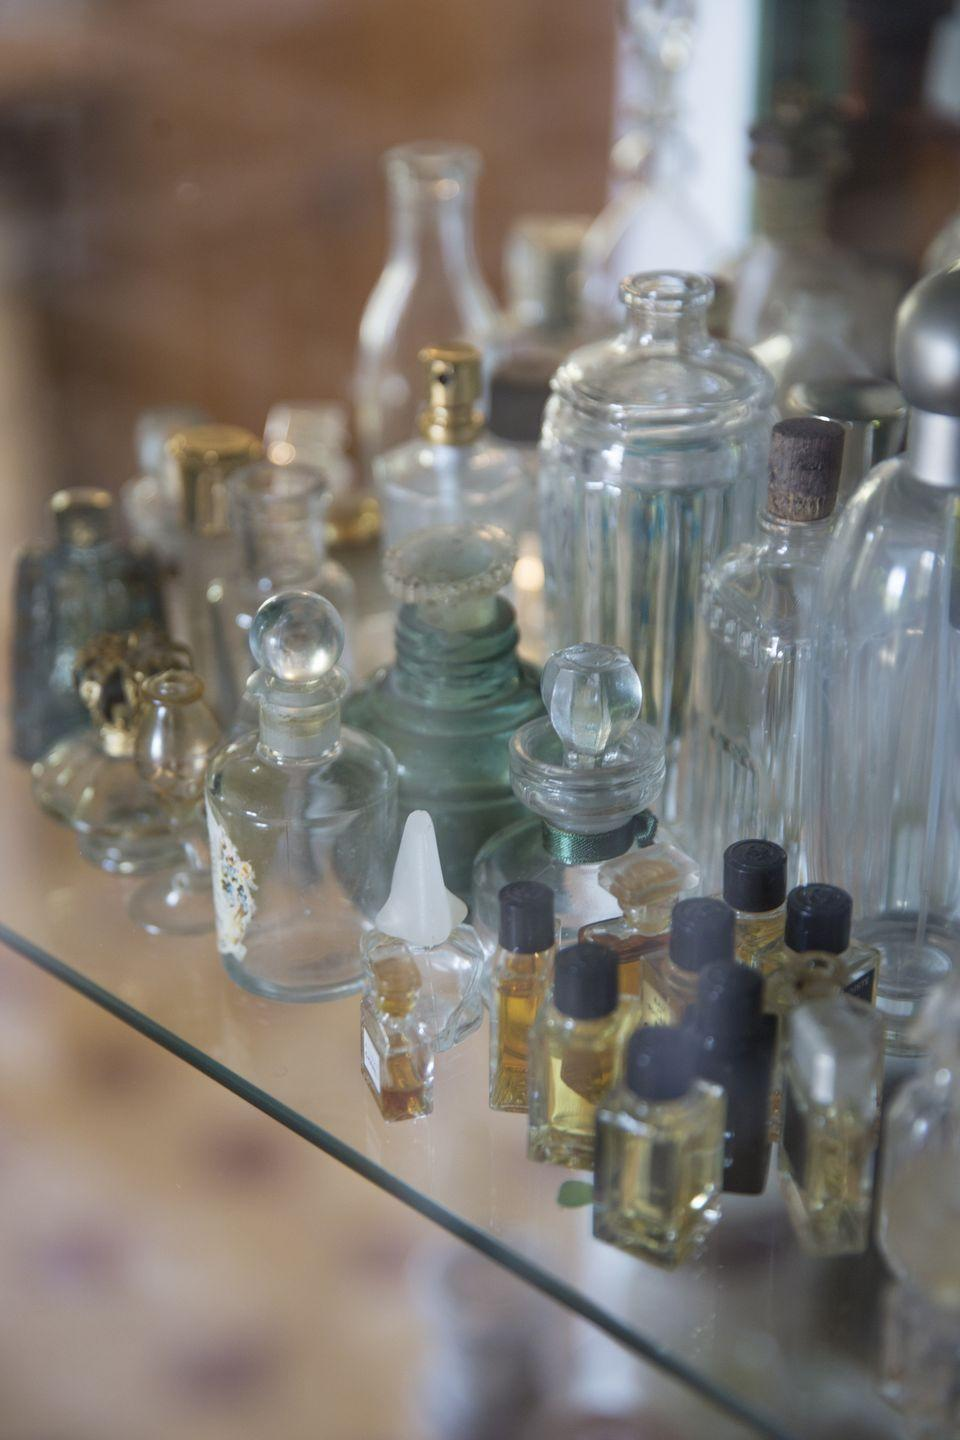 """<p>There are entire auctions dedicated to these prized pieces of glass. When browsing garage sales, look out for those in mint condition, with their original packaging—and the older, the better. One of the more collectible examples, Lalique 's """"Les Sirenes"""" Flacon Collection Perfume bottle, is <a href=""""https://worthly.com/most-expensive/perfume-bottles-worth-collecting/"""" rel=""""nofollow noopener"""" target=""""_blank"""" data-ylk=""""slk:worth up to $500."""" class=""""link rapid-noclick-resp"""">worth up to $500.</a></p>"""